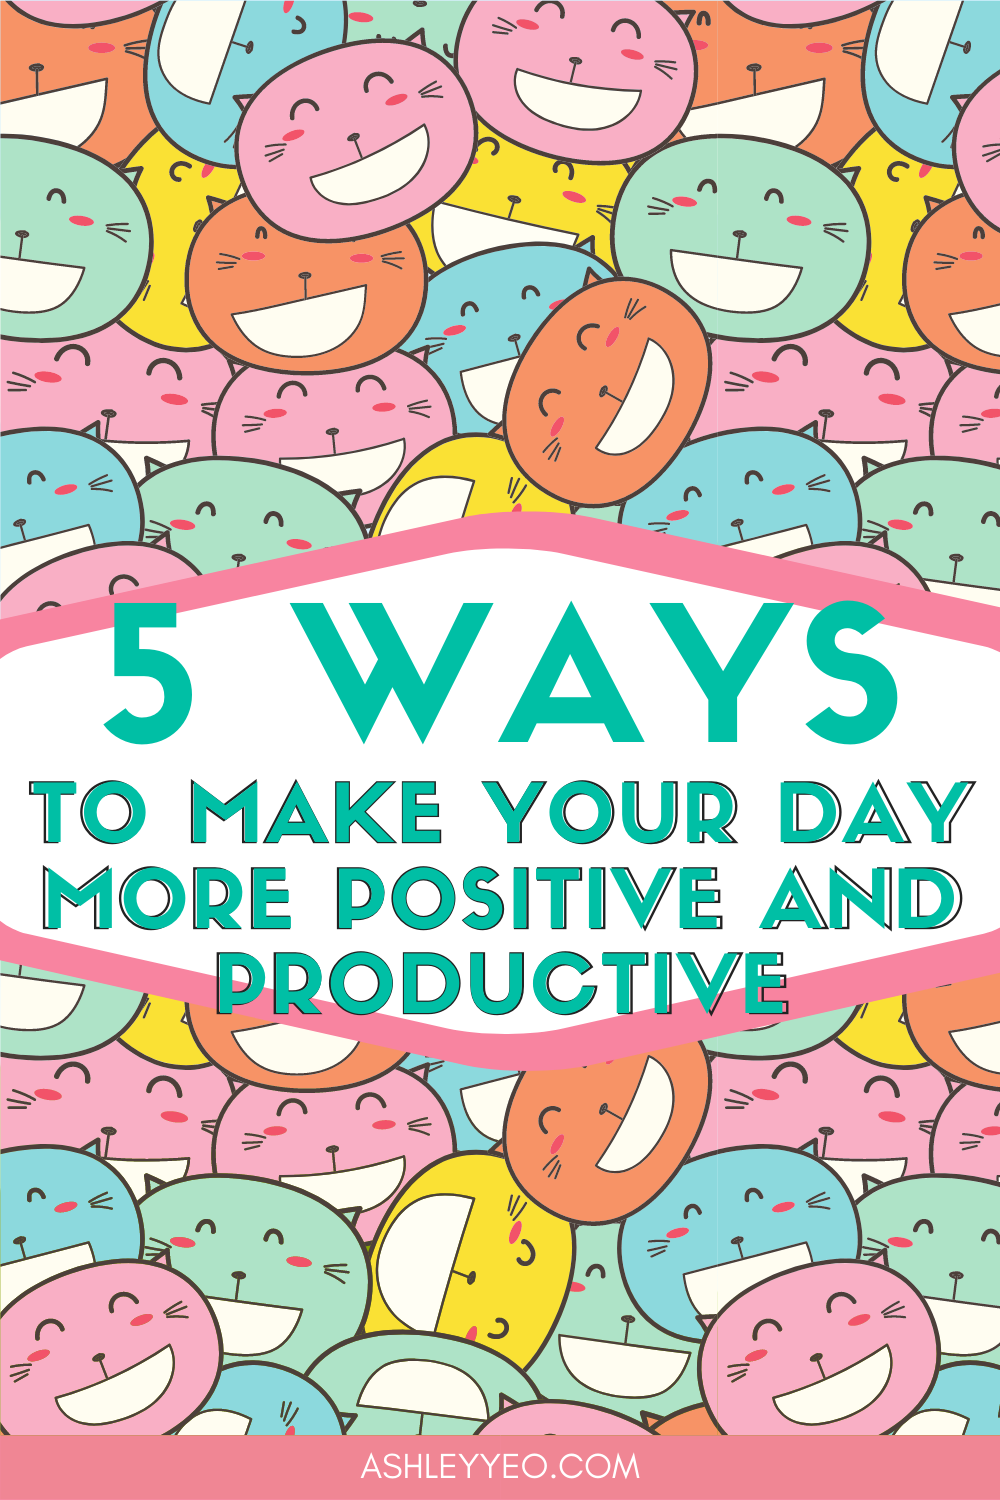 Five Ways to Make Your Day More Positive and Productive